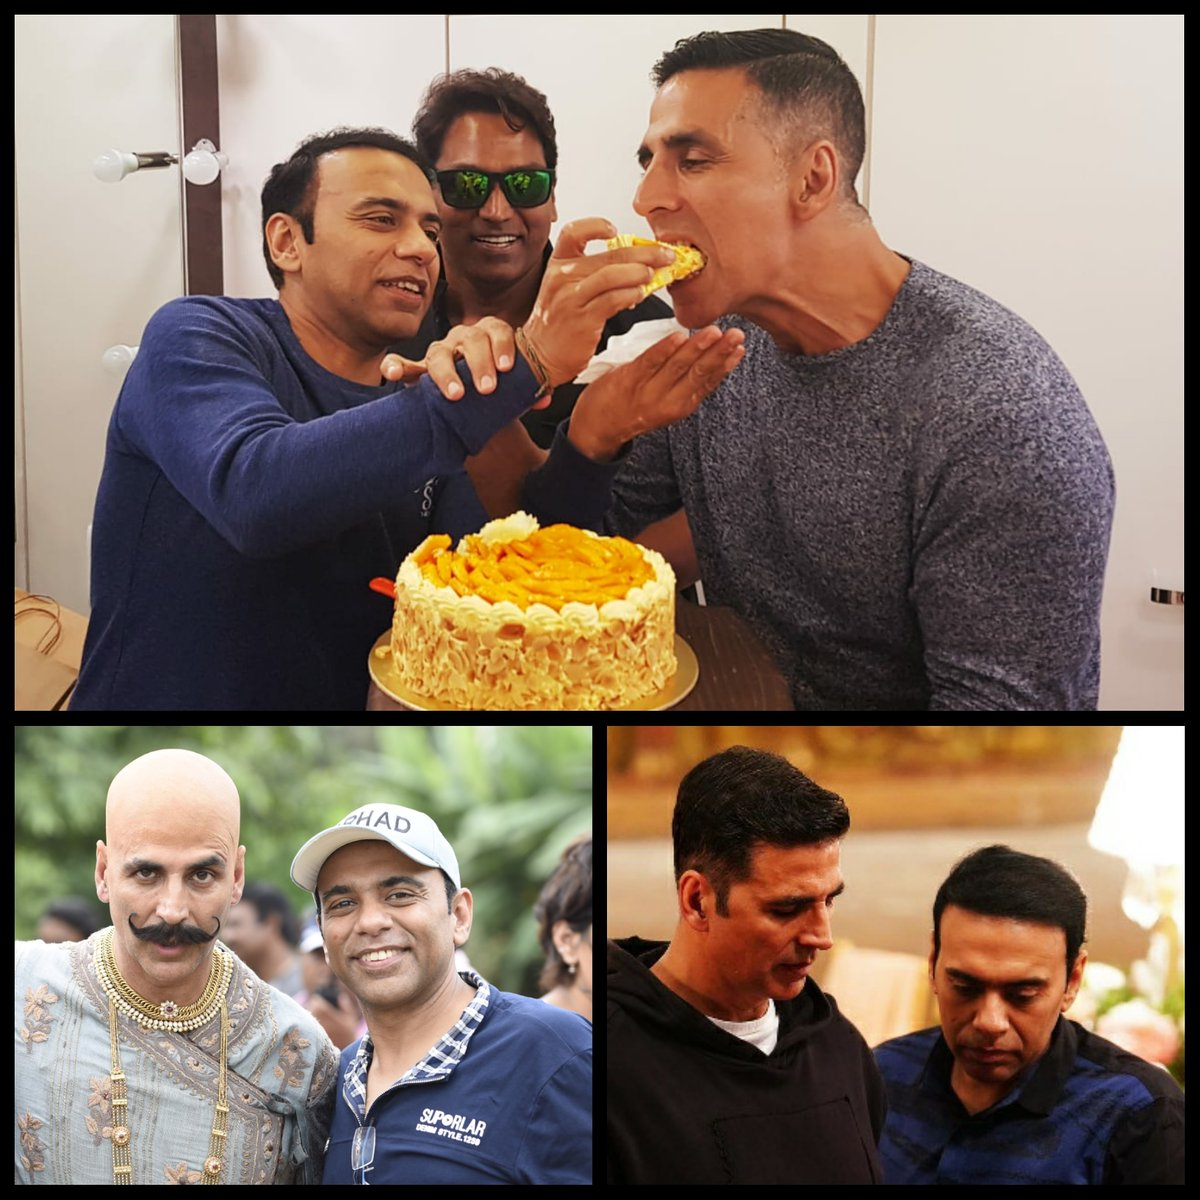 Mujhe life ki sahi 'Direction' dene waala #Bala @akshaykumar 🤗 Happy Birthday sir ❤️ #HappyBirthdayAkshayKumar #Entertainment #BachchanPandey #Boss #Housefull2 #housefull3 #housefull4 #LaxmmiBomb #sooryavanshi